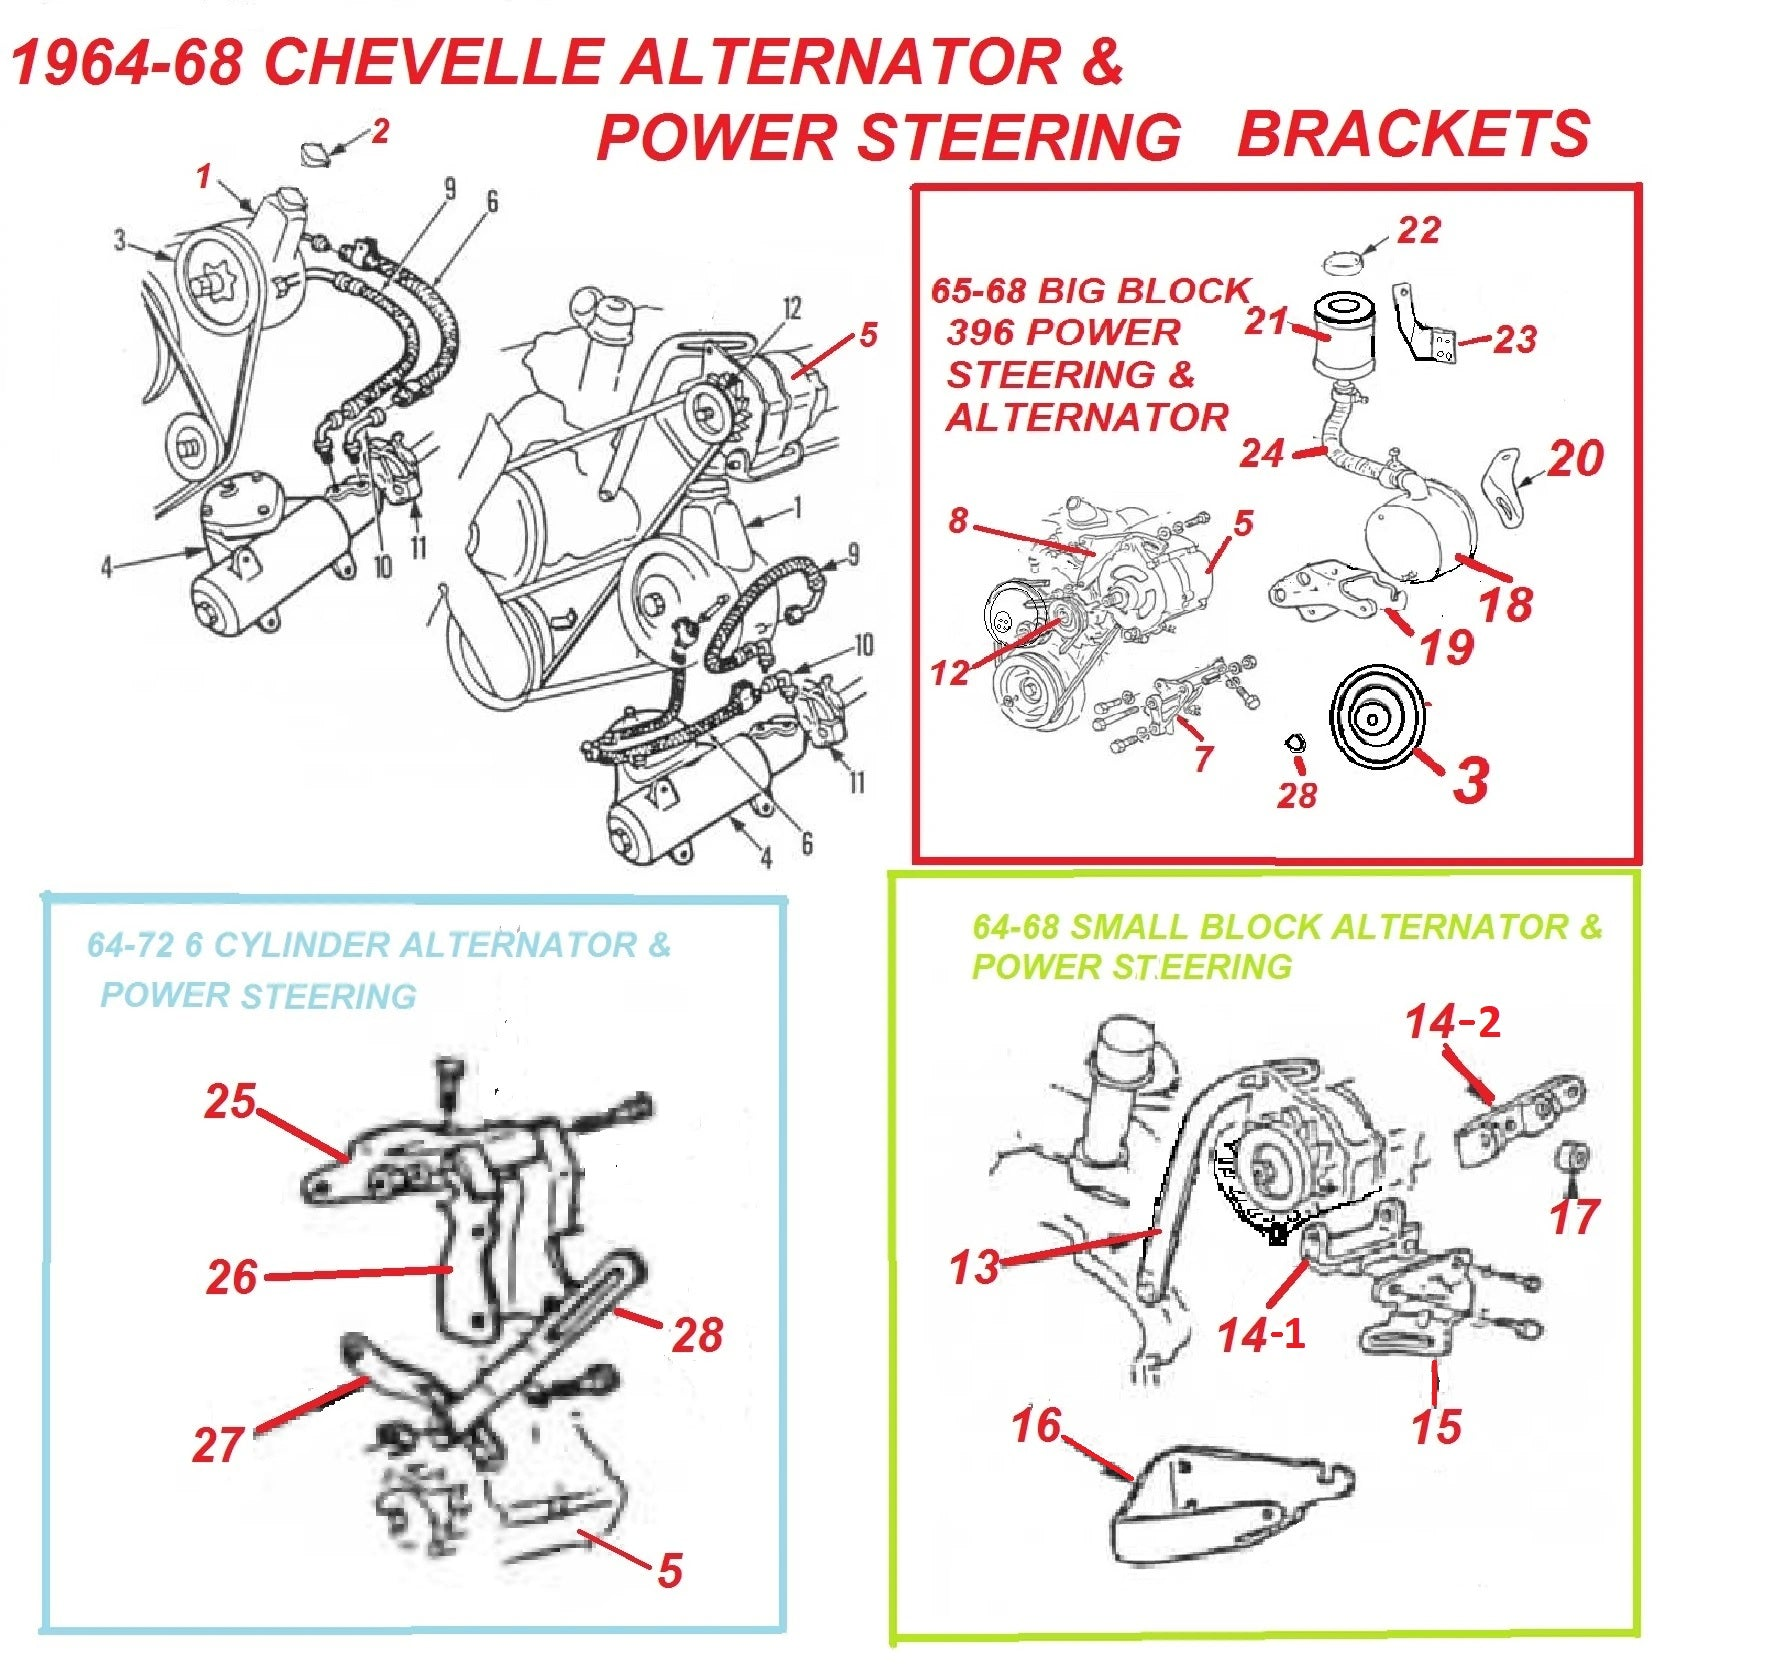 Wiper Motor Wiring Diagram As Well 1970 Chevelle Horn Wiring Diagram